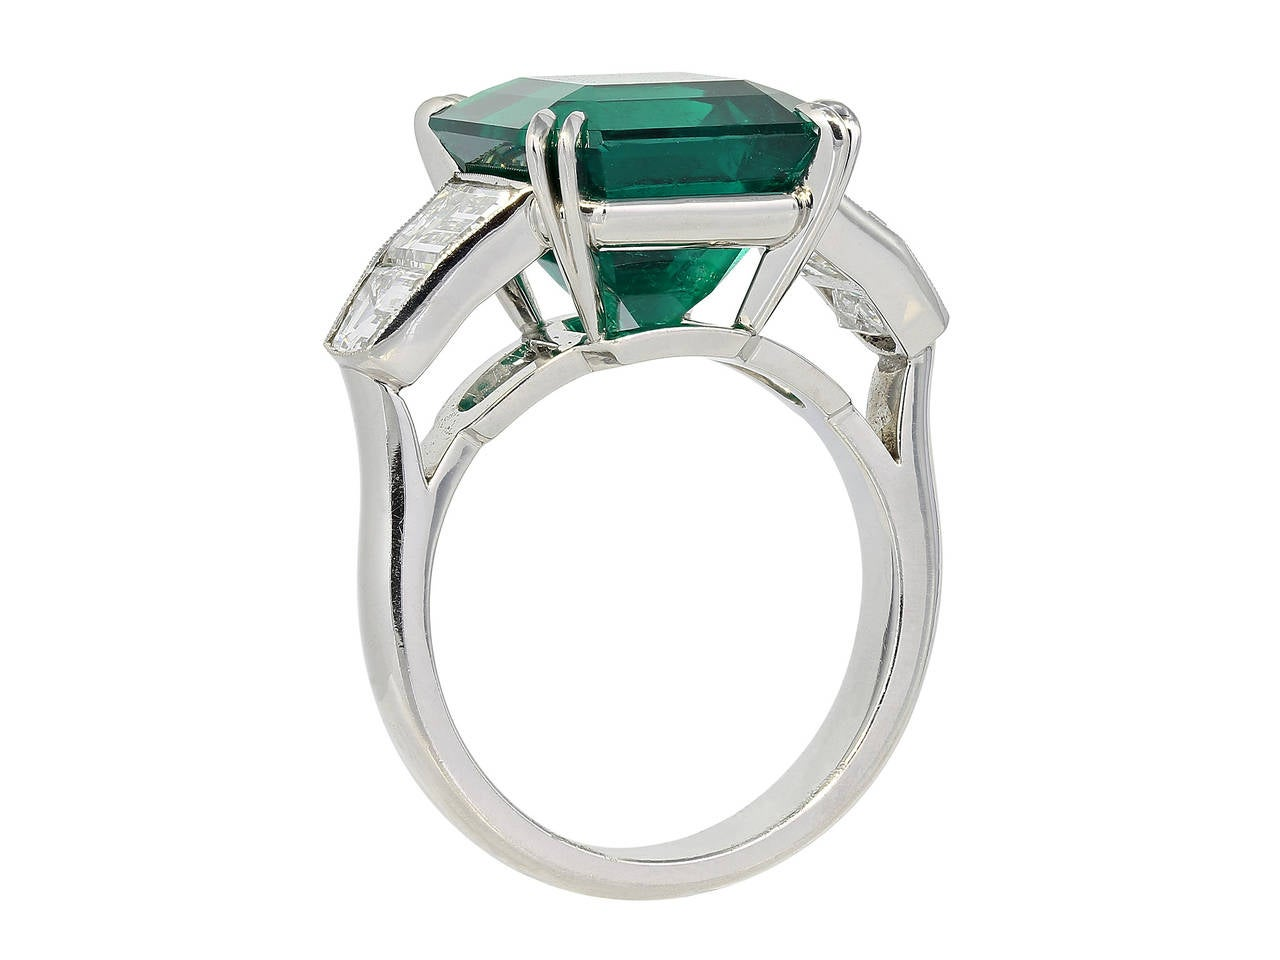 Platinum custom made 5 stone ring consisting of 1 square emerald cut Colombian emerald weighing 7.28 carats with GIA certificate #5111867580, the center stone is flanked by 2 step but half moons weighing .80 carats and 2 step cut trapezoid shaped